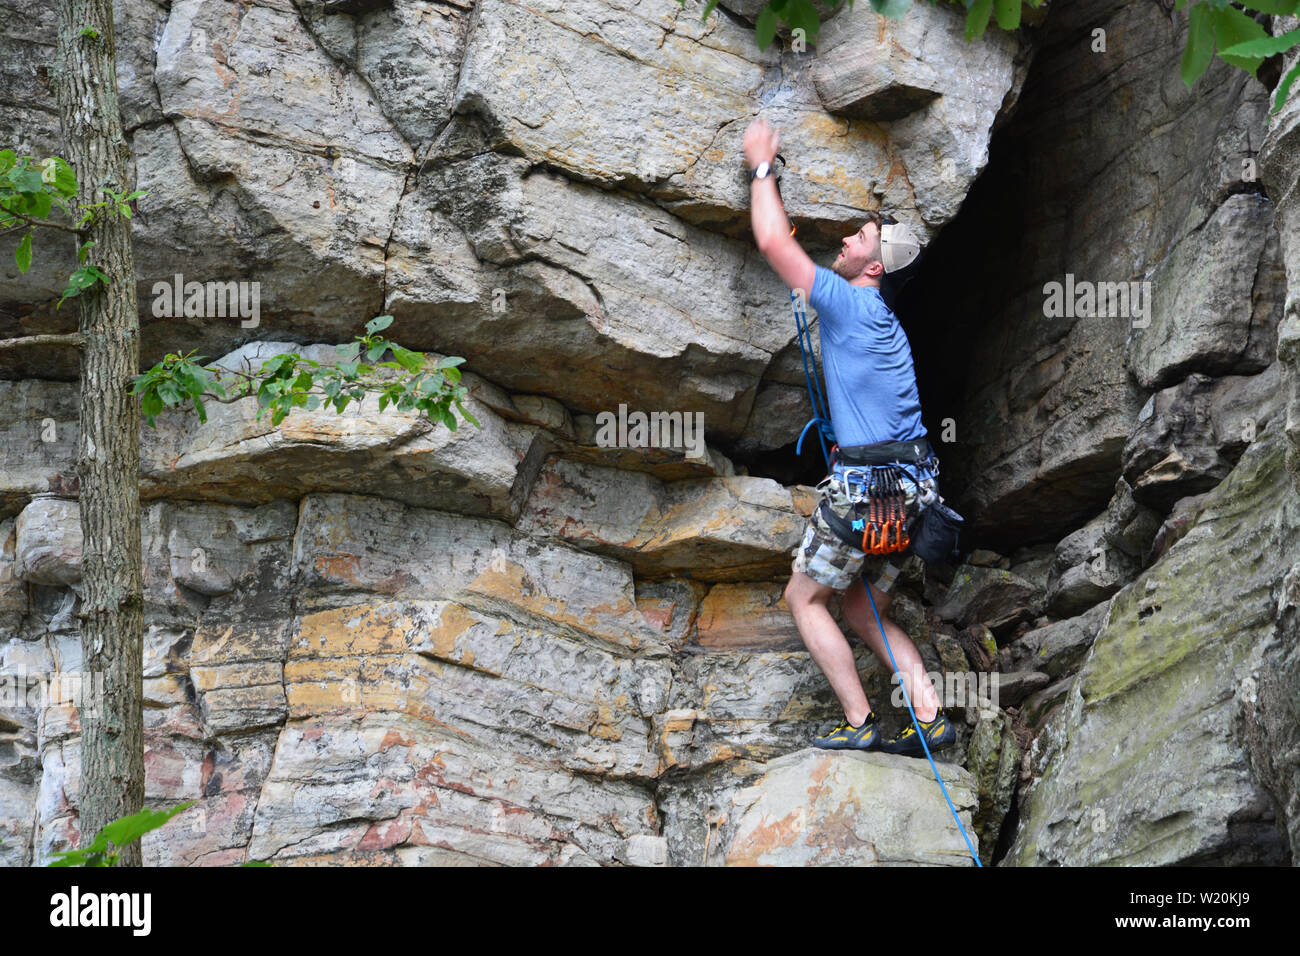 A young male climber works his way up a cliff face on the Ledge Spring Trail at Pilot Mountain State Park in North Carolina. - Stock Image